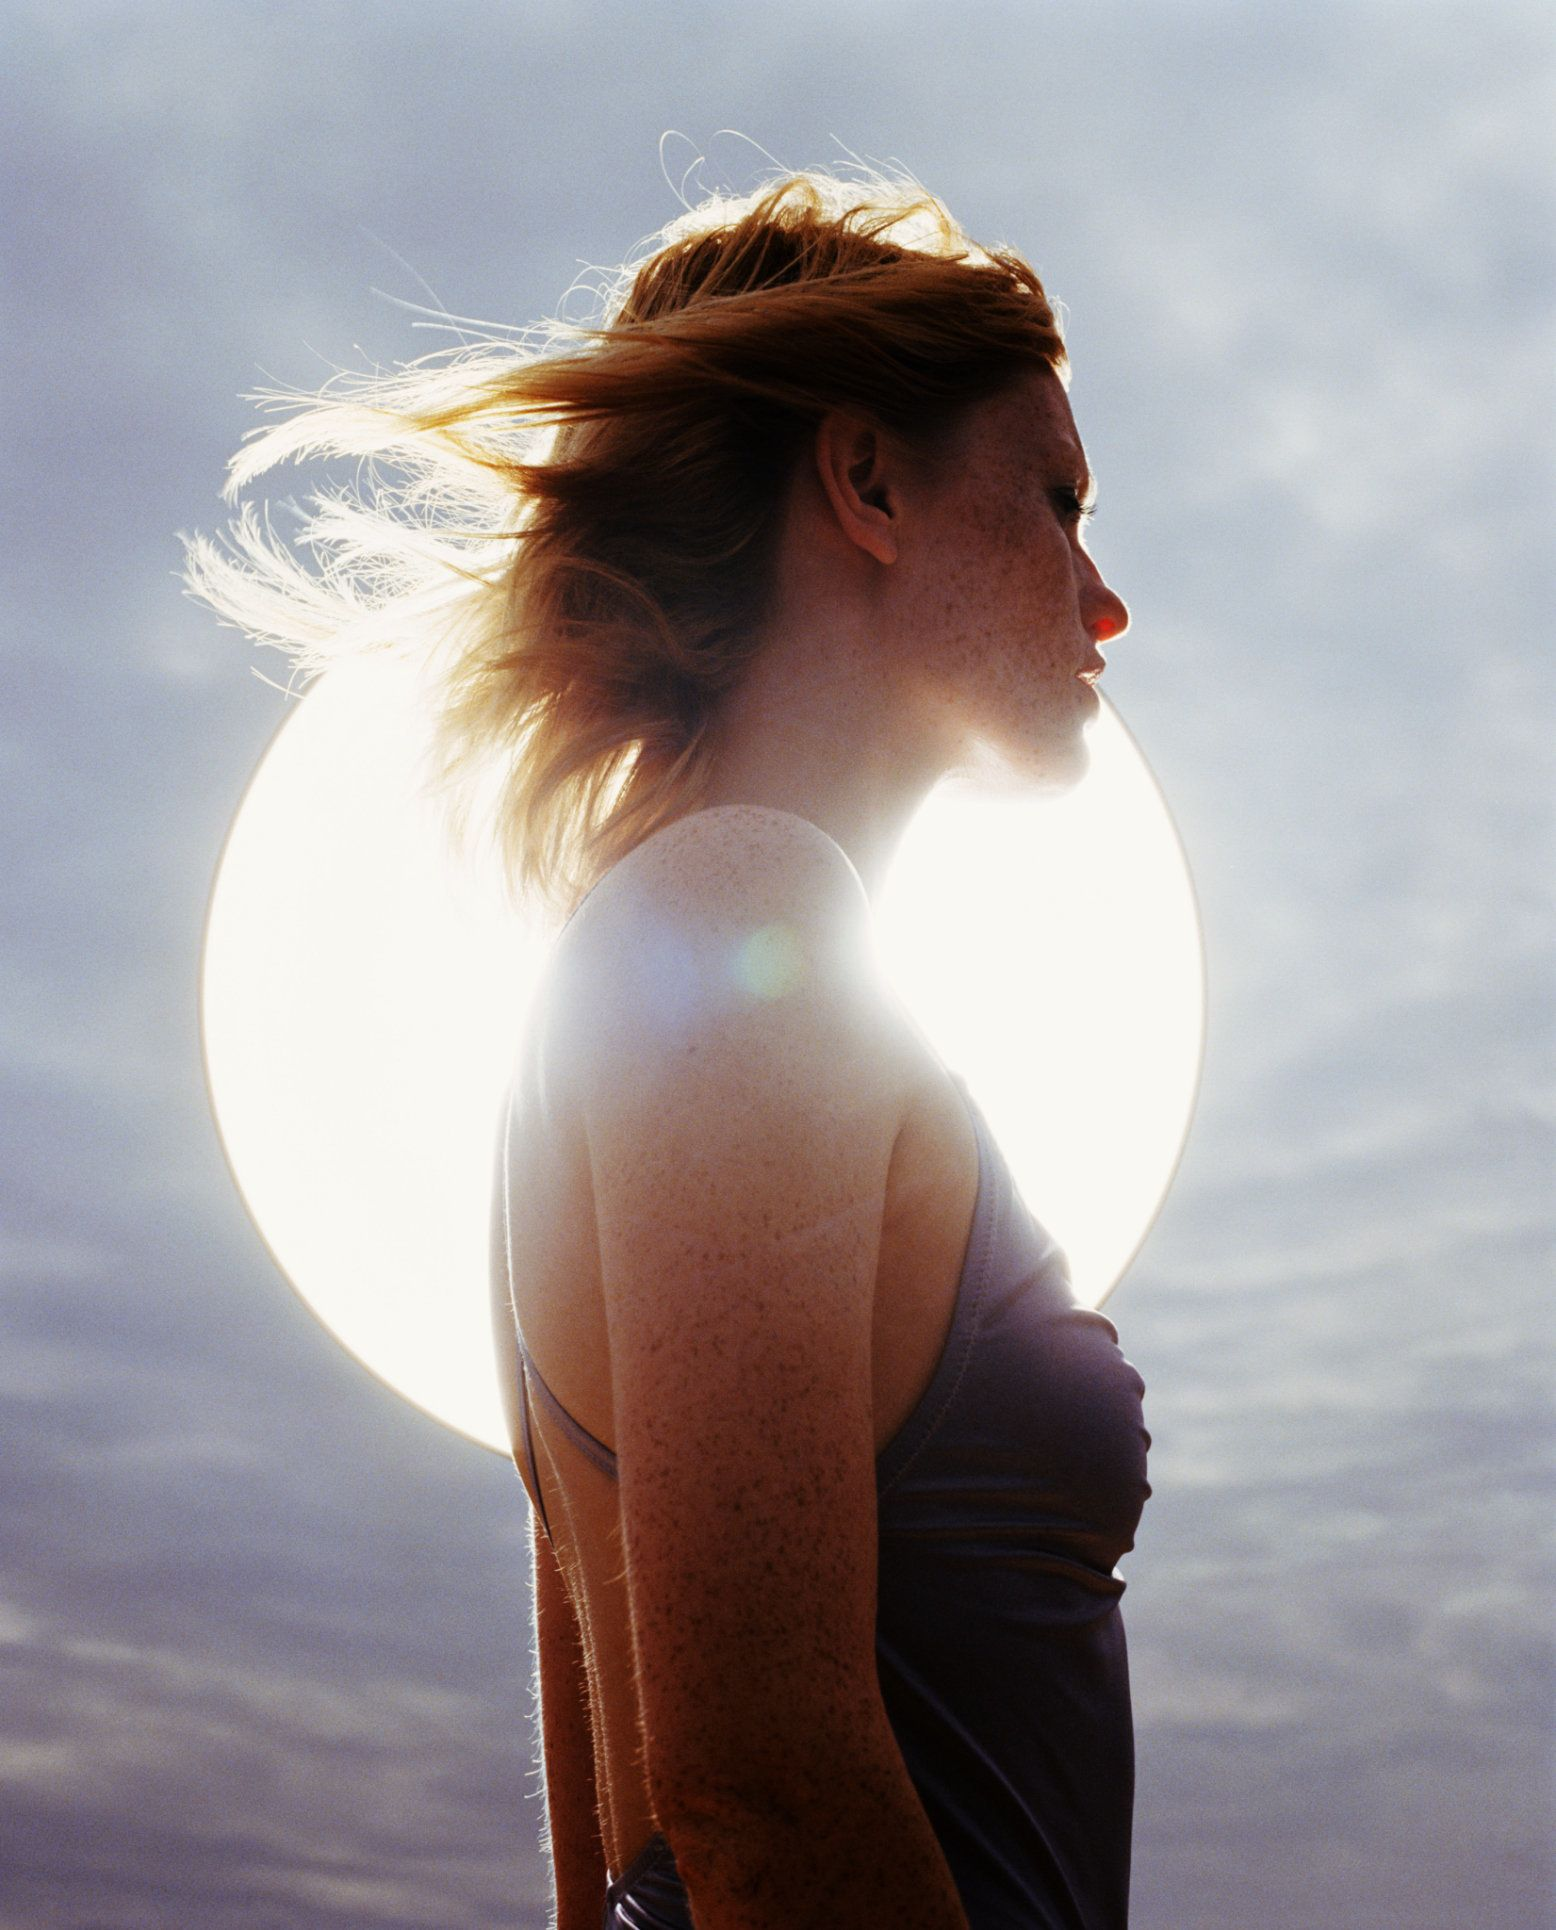 Young woman standing in front of sun, backlit